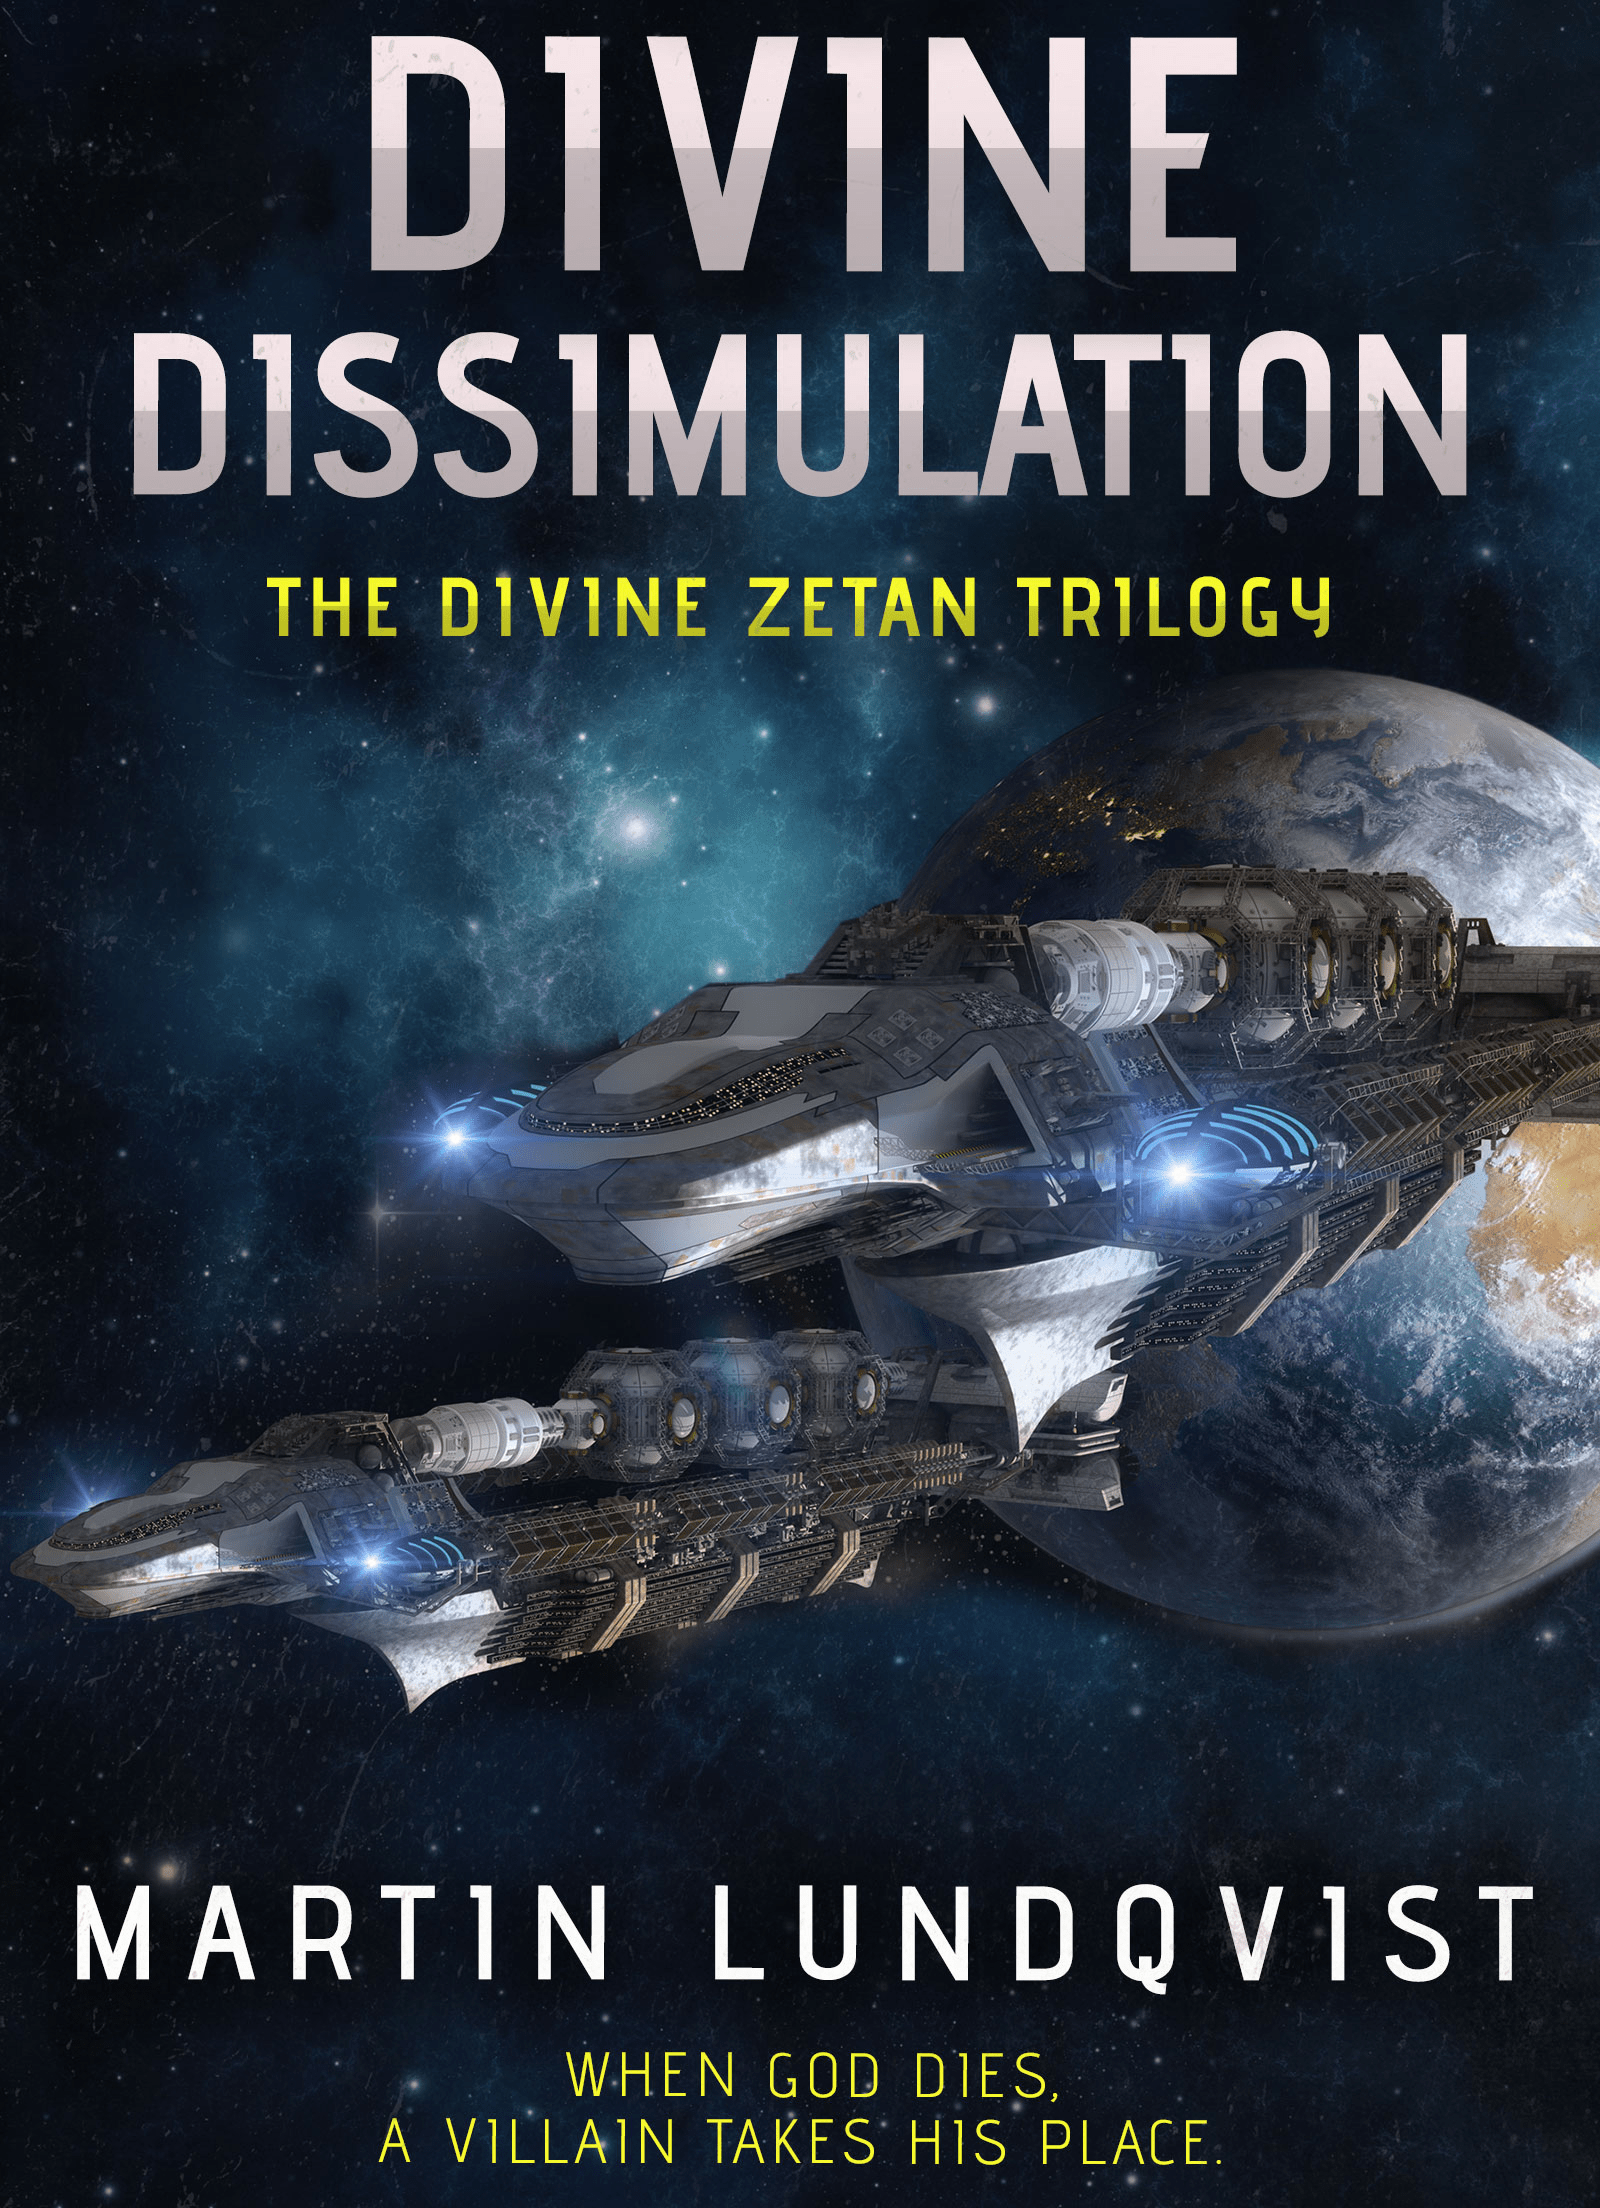 The Divine Dissimulation